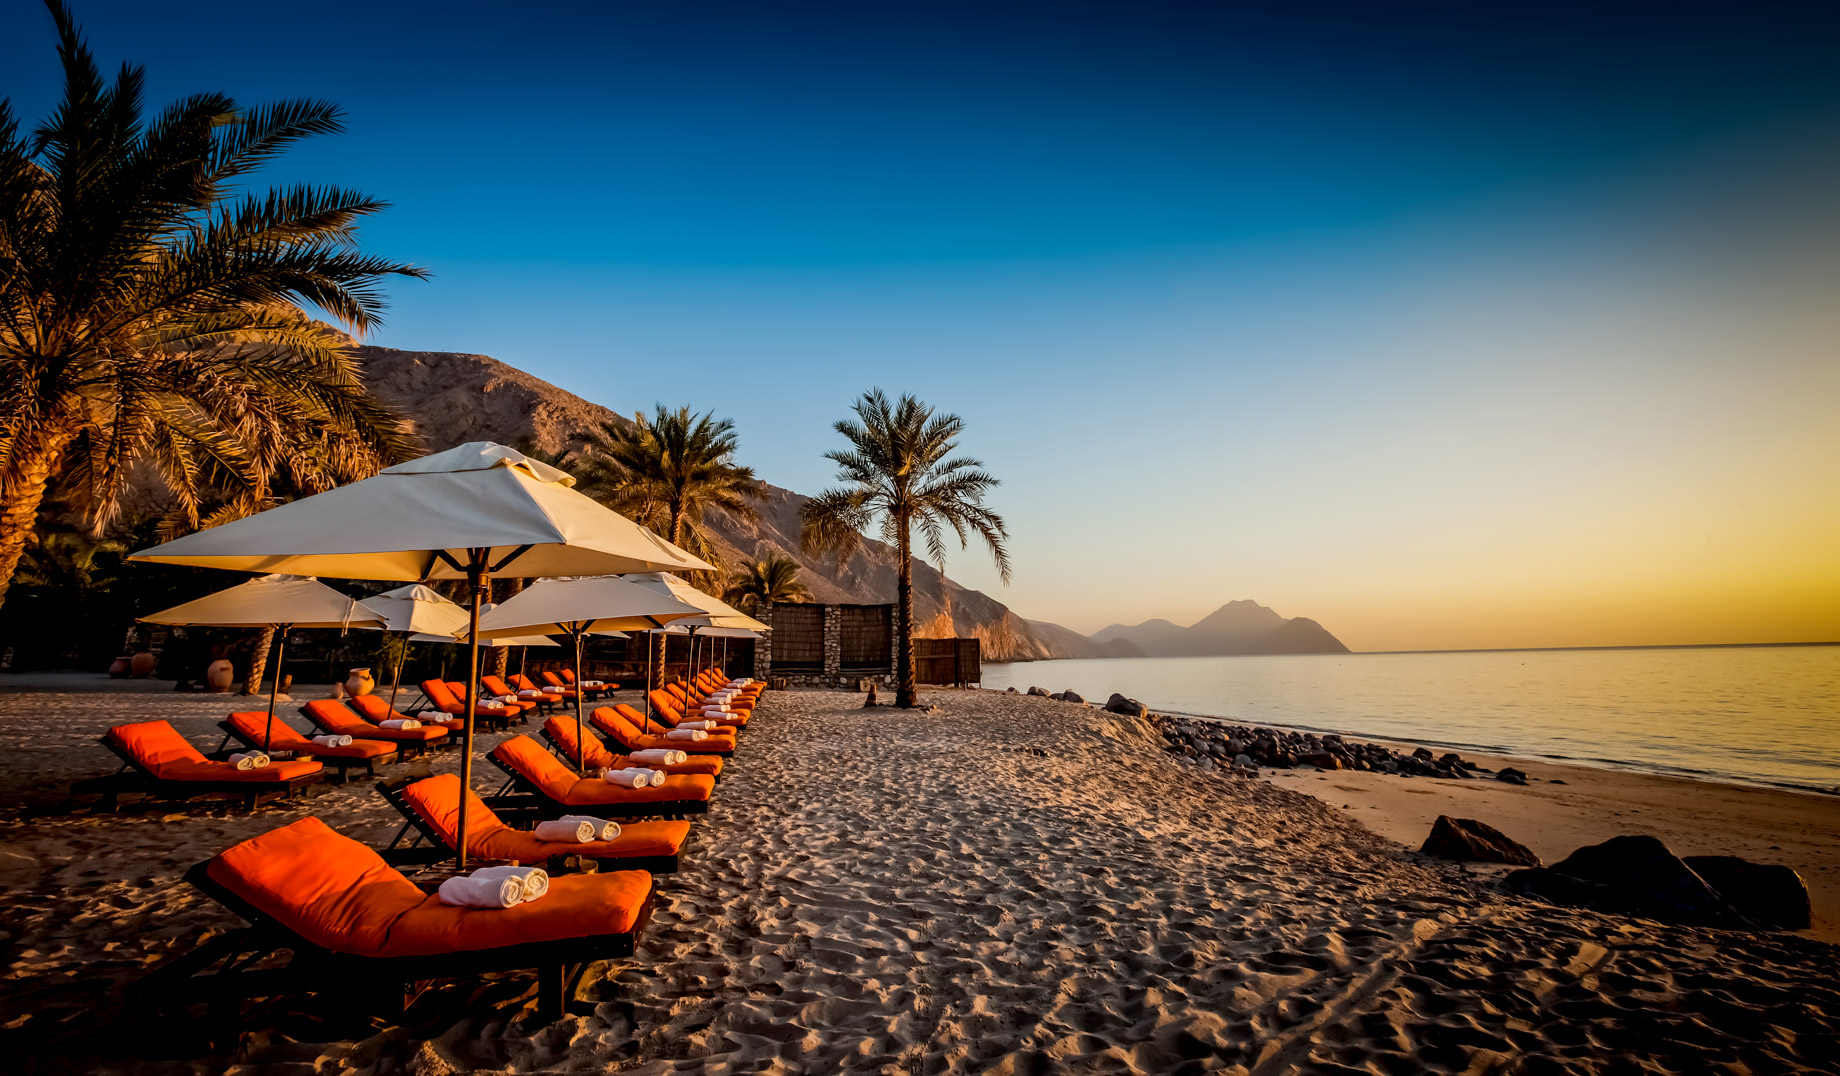 Oman Six Senses Luxury Resort Beach Chairs at Sunrise